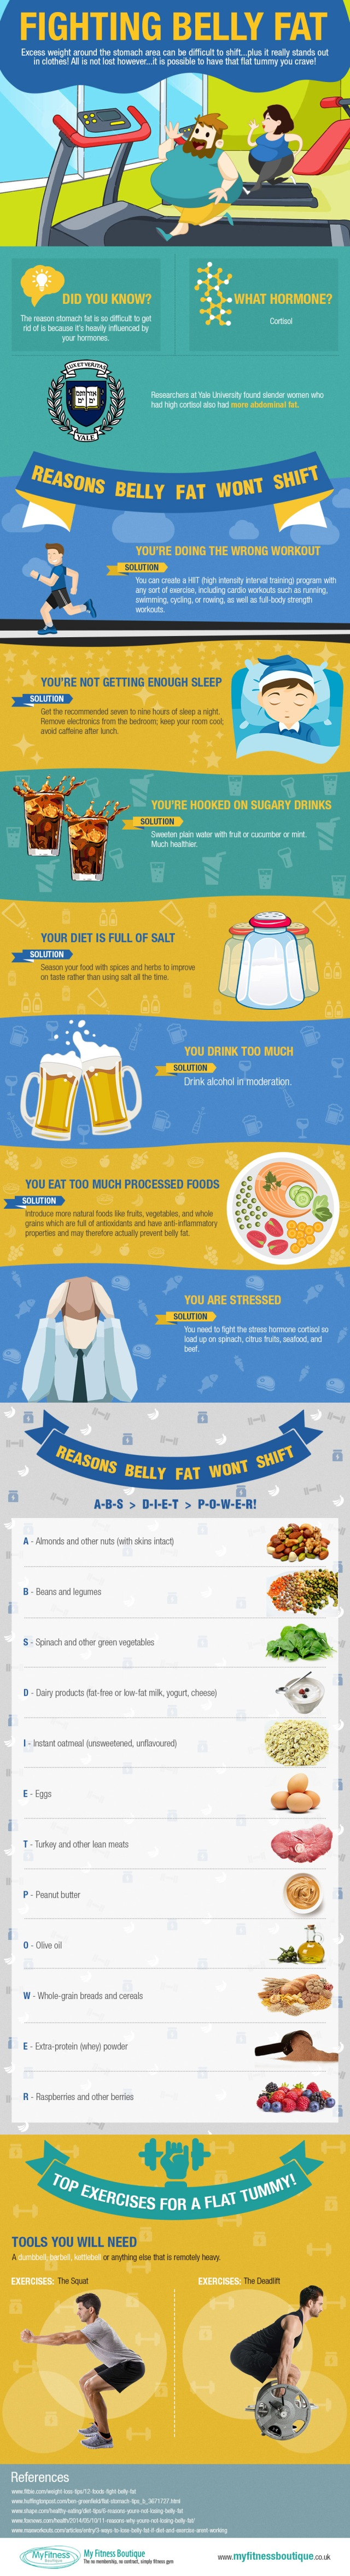 Fighting Belly Fat Infographic